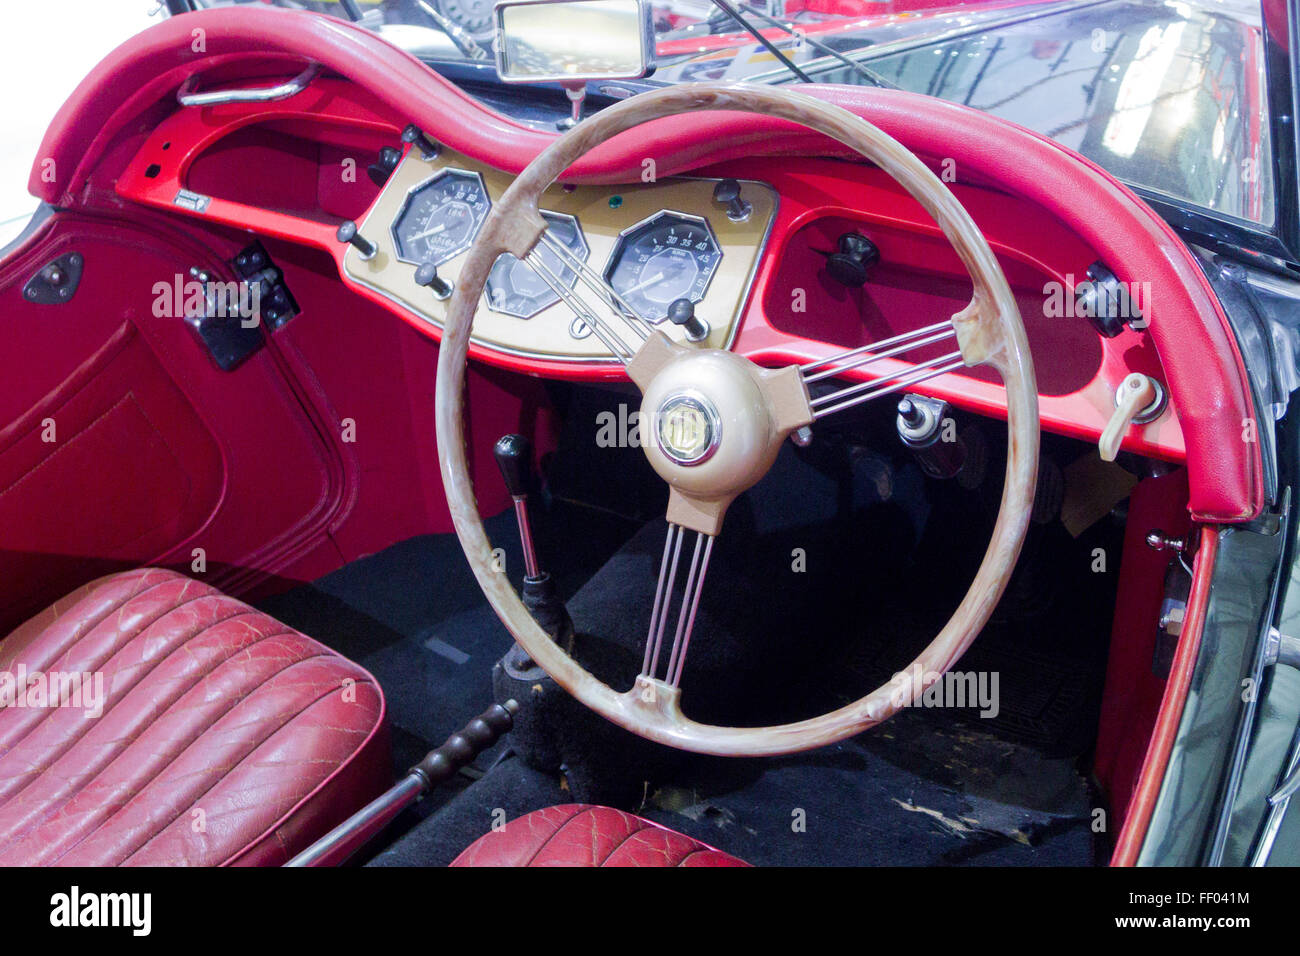 interior of a 1954 mg tf midget classic british sports car uk stock photo royalty free image. Black Bedroom Furniture Sets. Home Design Ideas